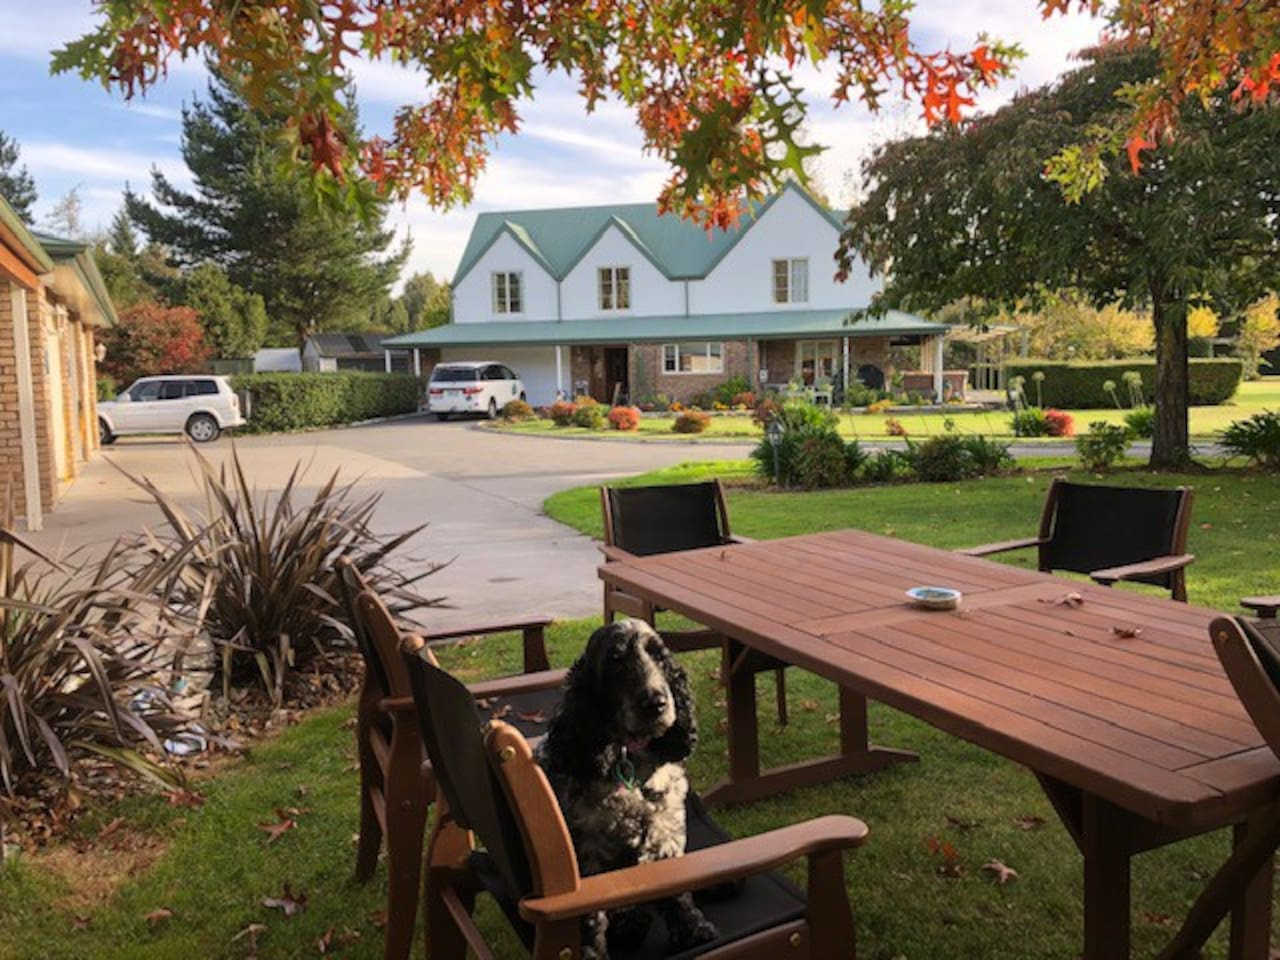 Mandeville Lodge is situated in a quiet cup-de-sac amongst an acre of gardens - enjoy free dog pats from Molly, the english cocker spaniel!